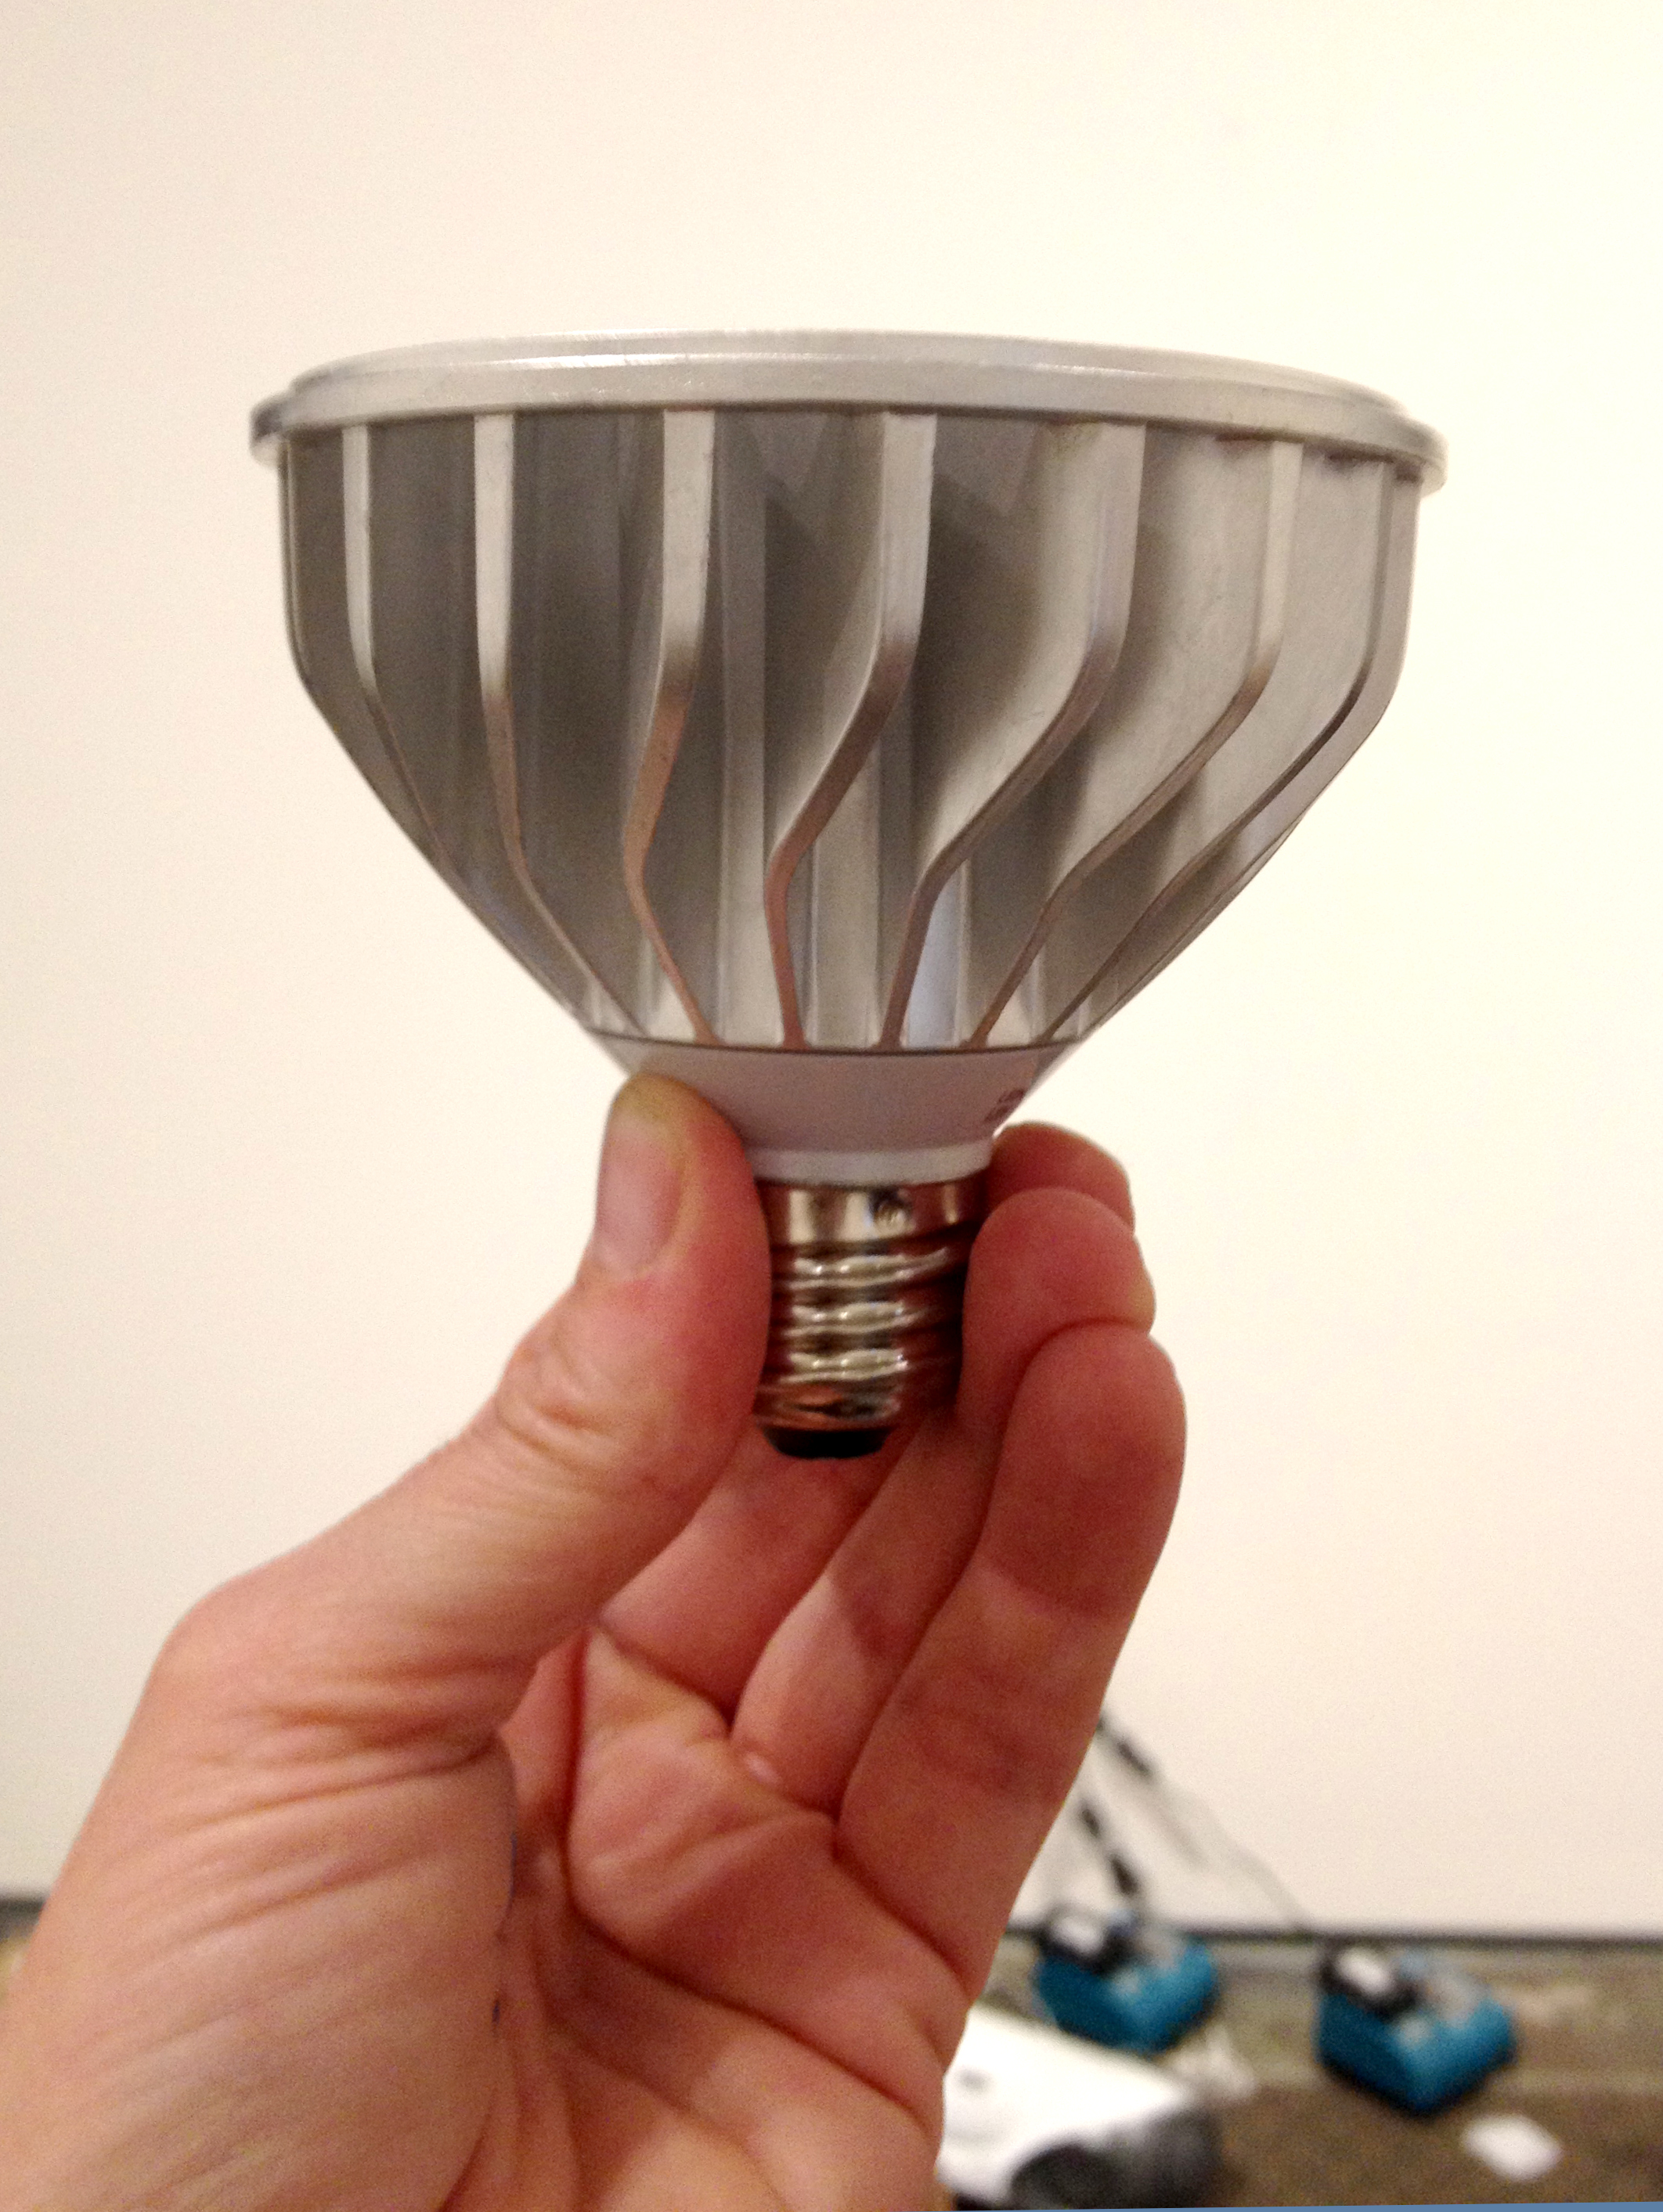 The new energy efficient LED light.